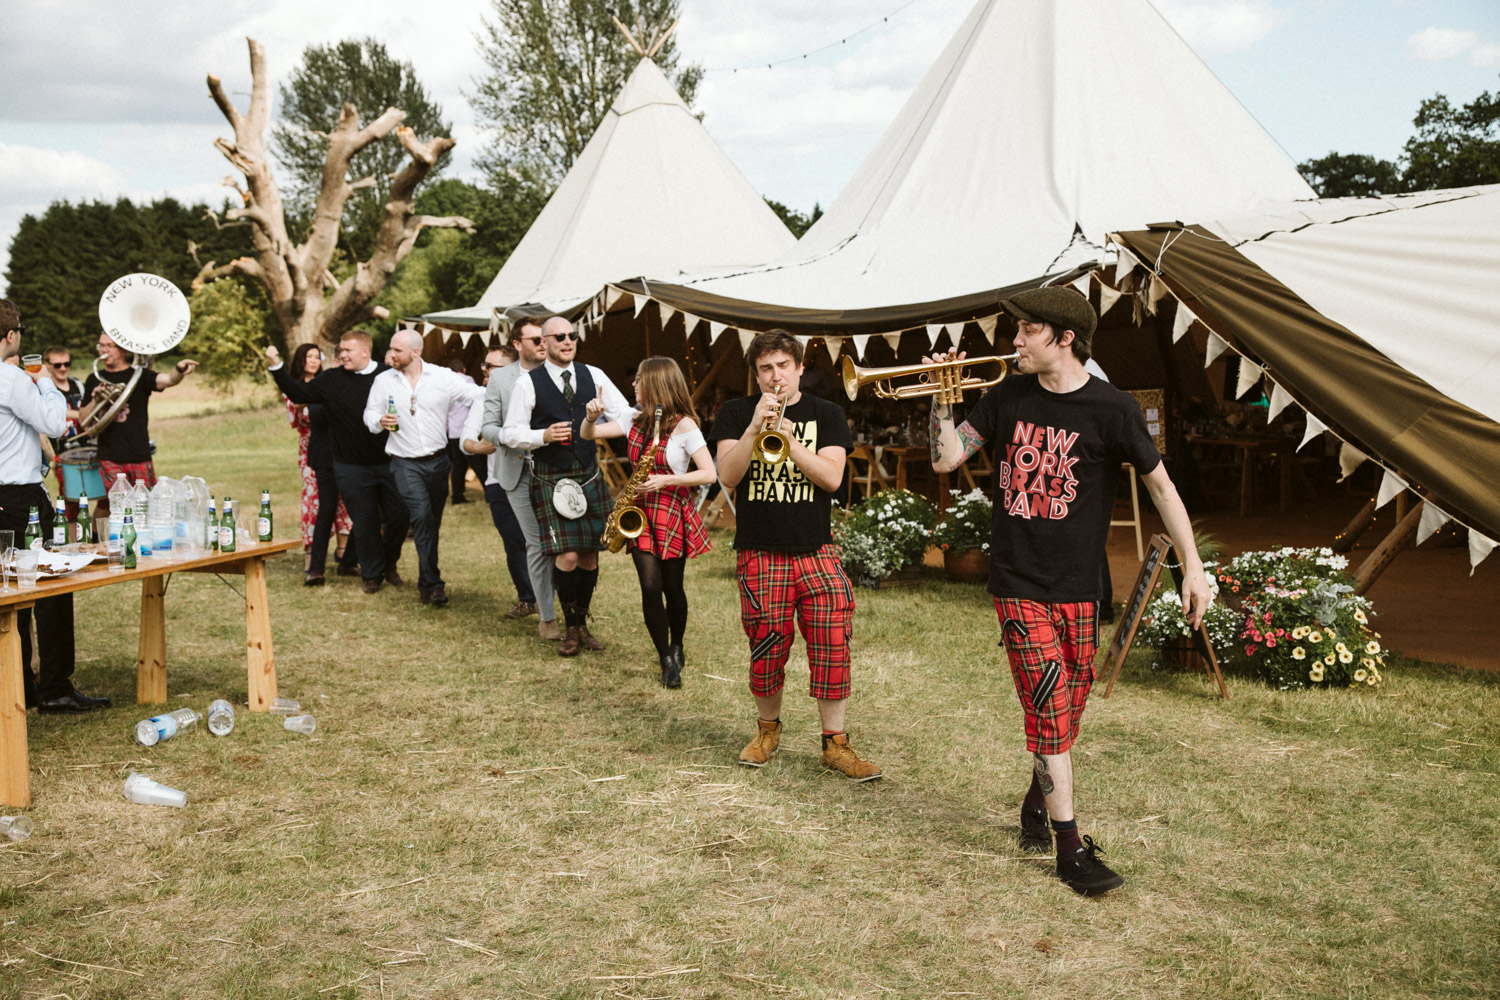 The New York brass band leading guests around the tipi